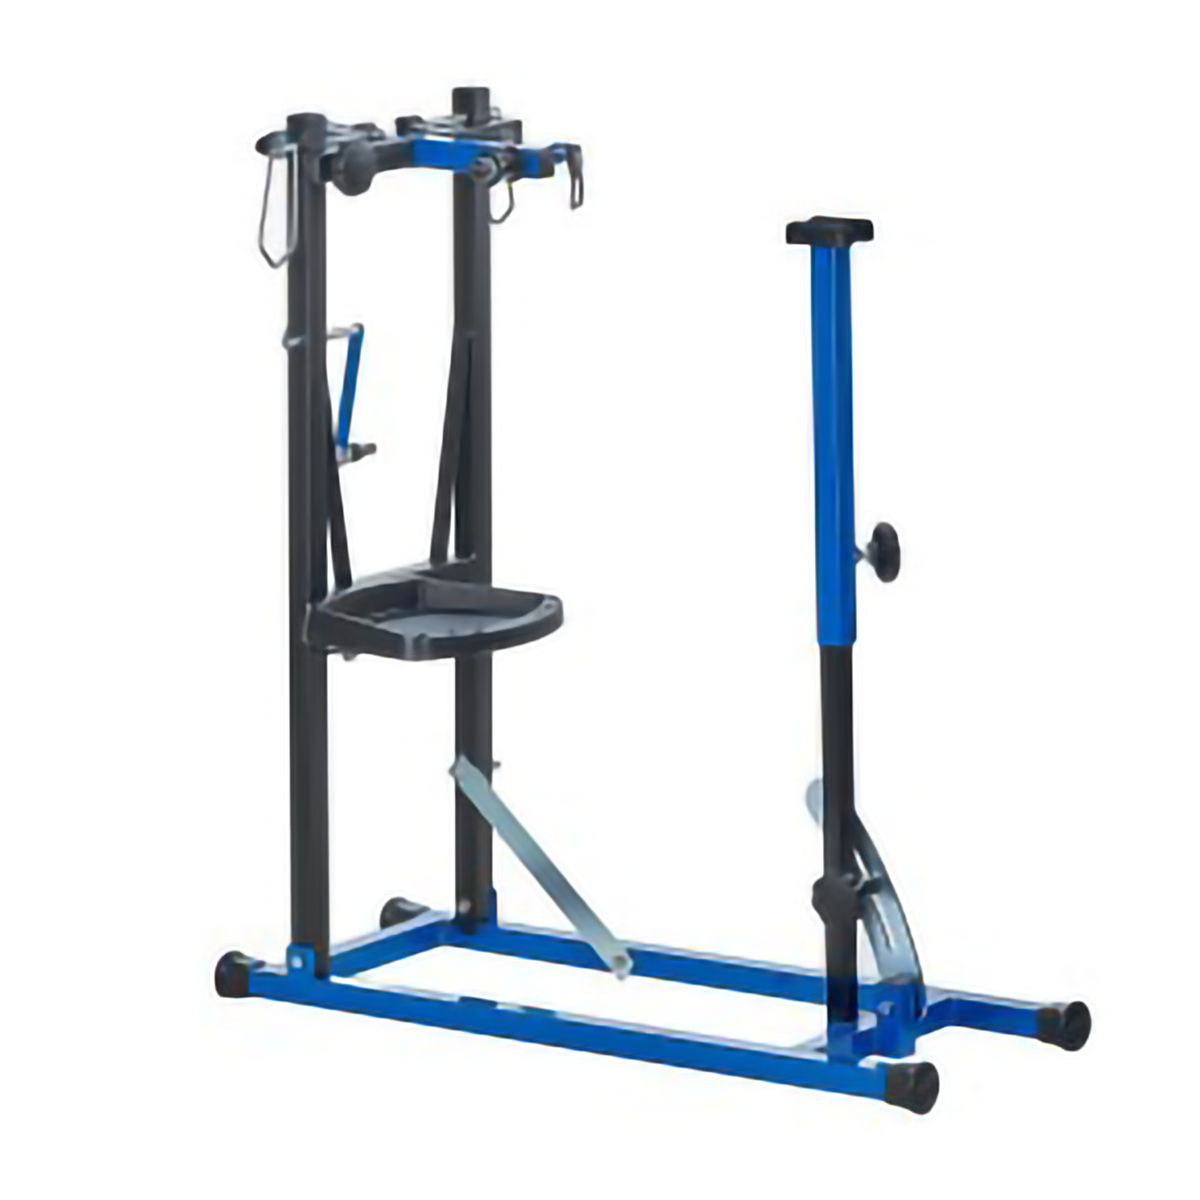 BiciSupport Duemila assembly stand   Stands